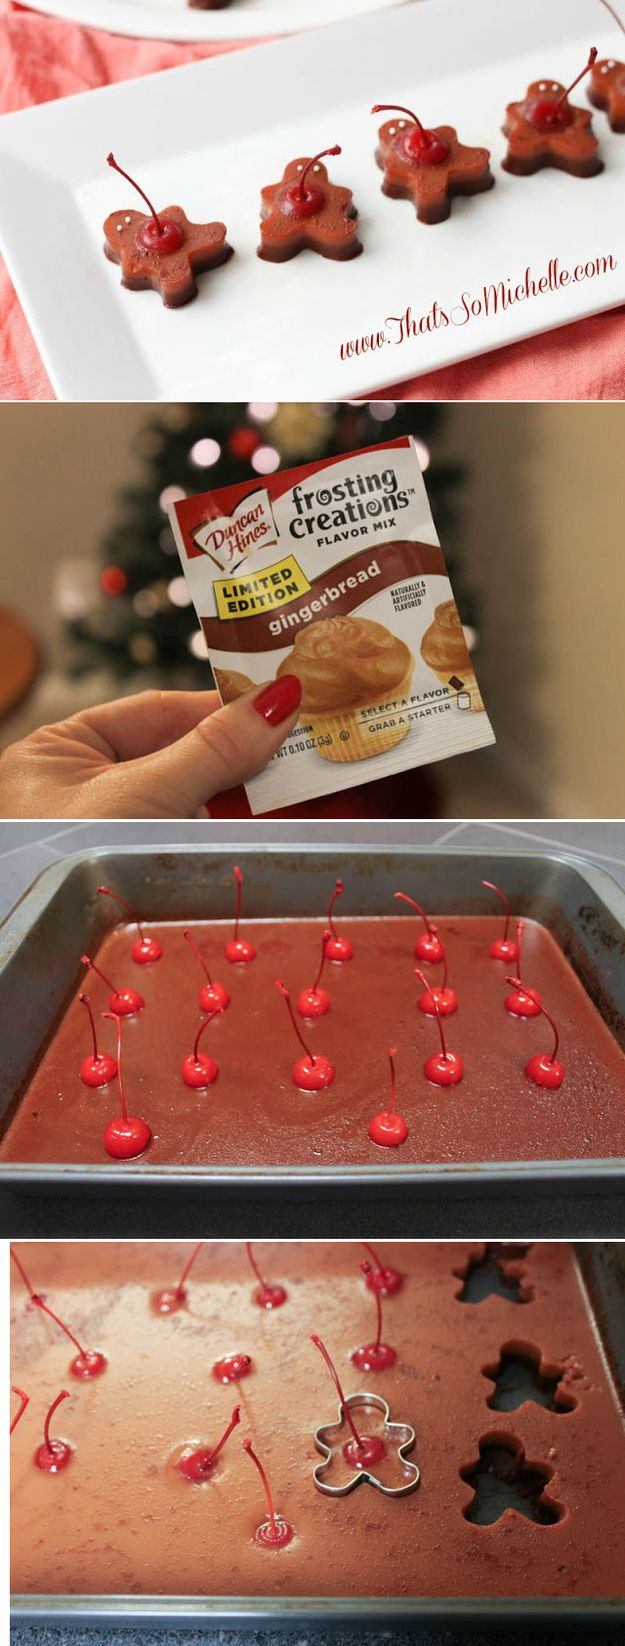 Use gingerbread frosting flavoring to make these adorable gingerbread man Jell-O shots.